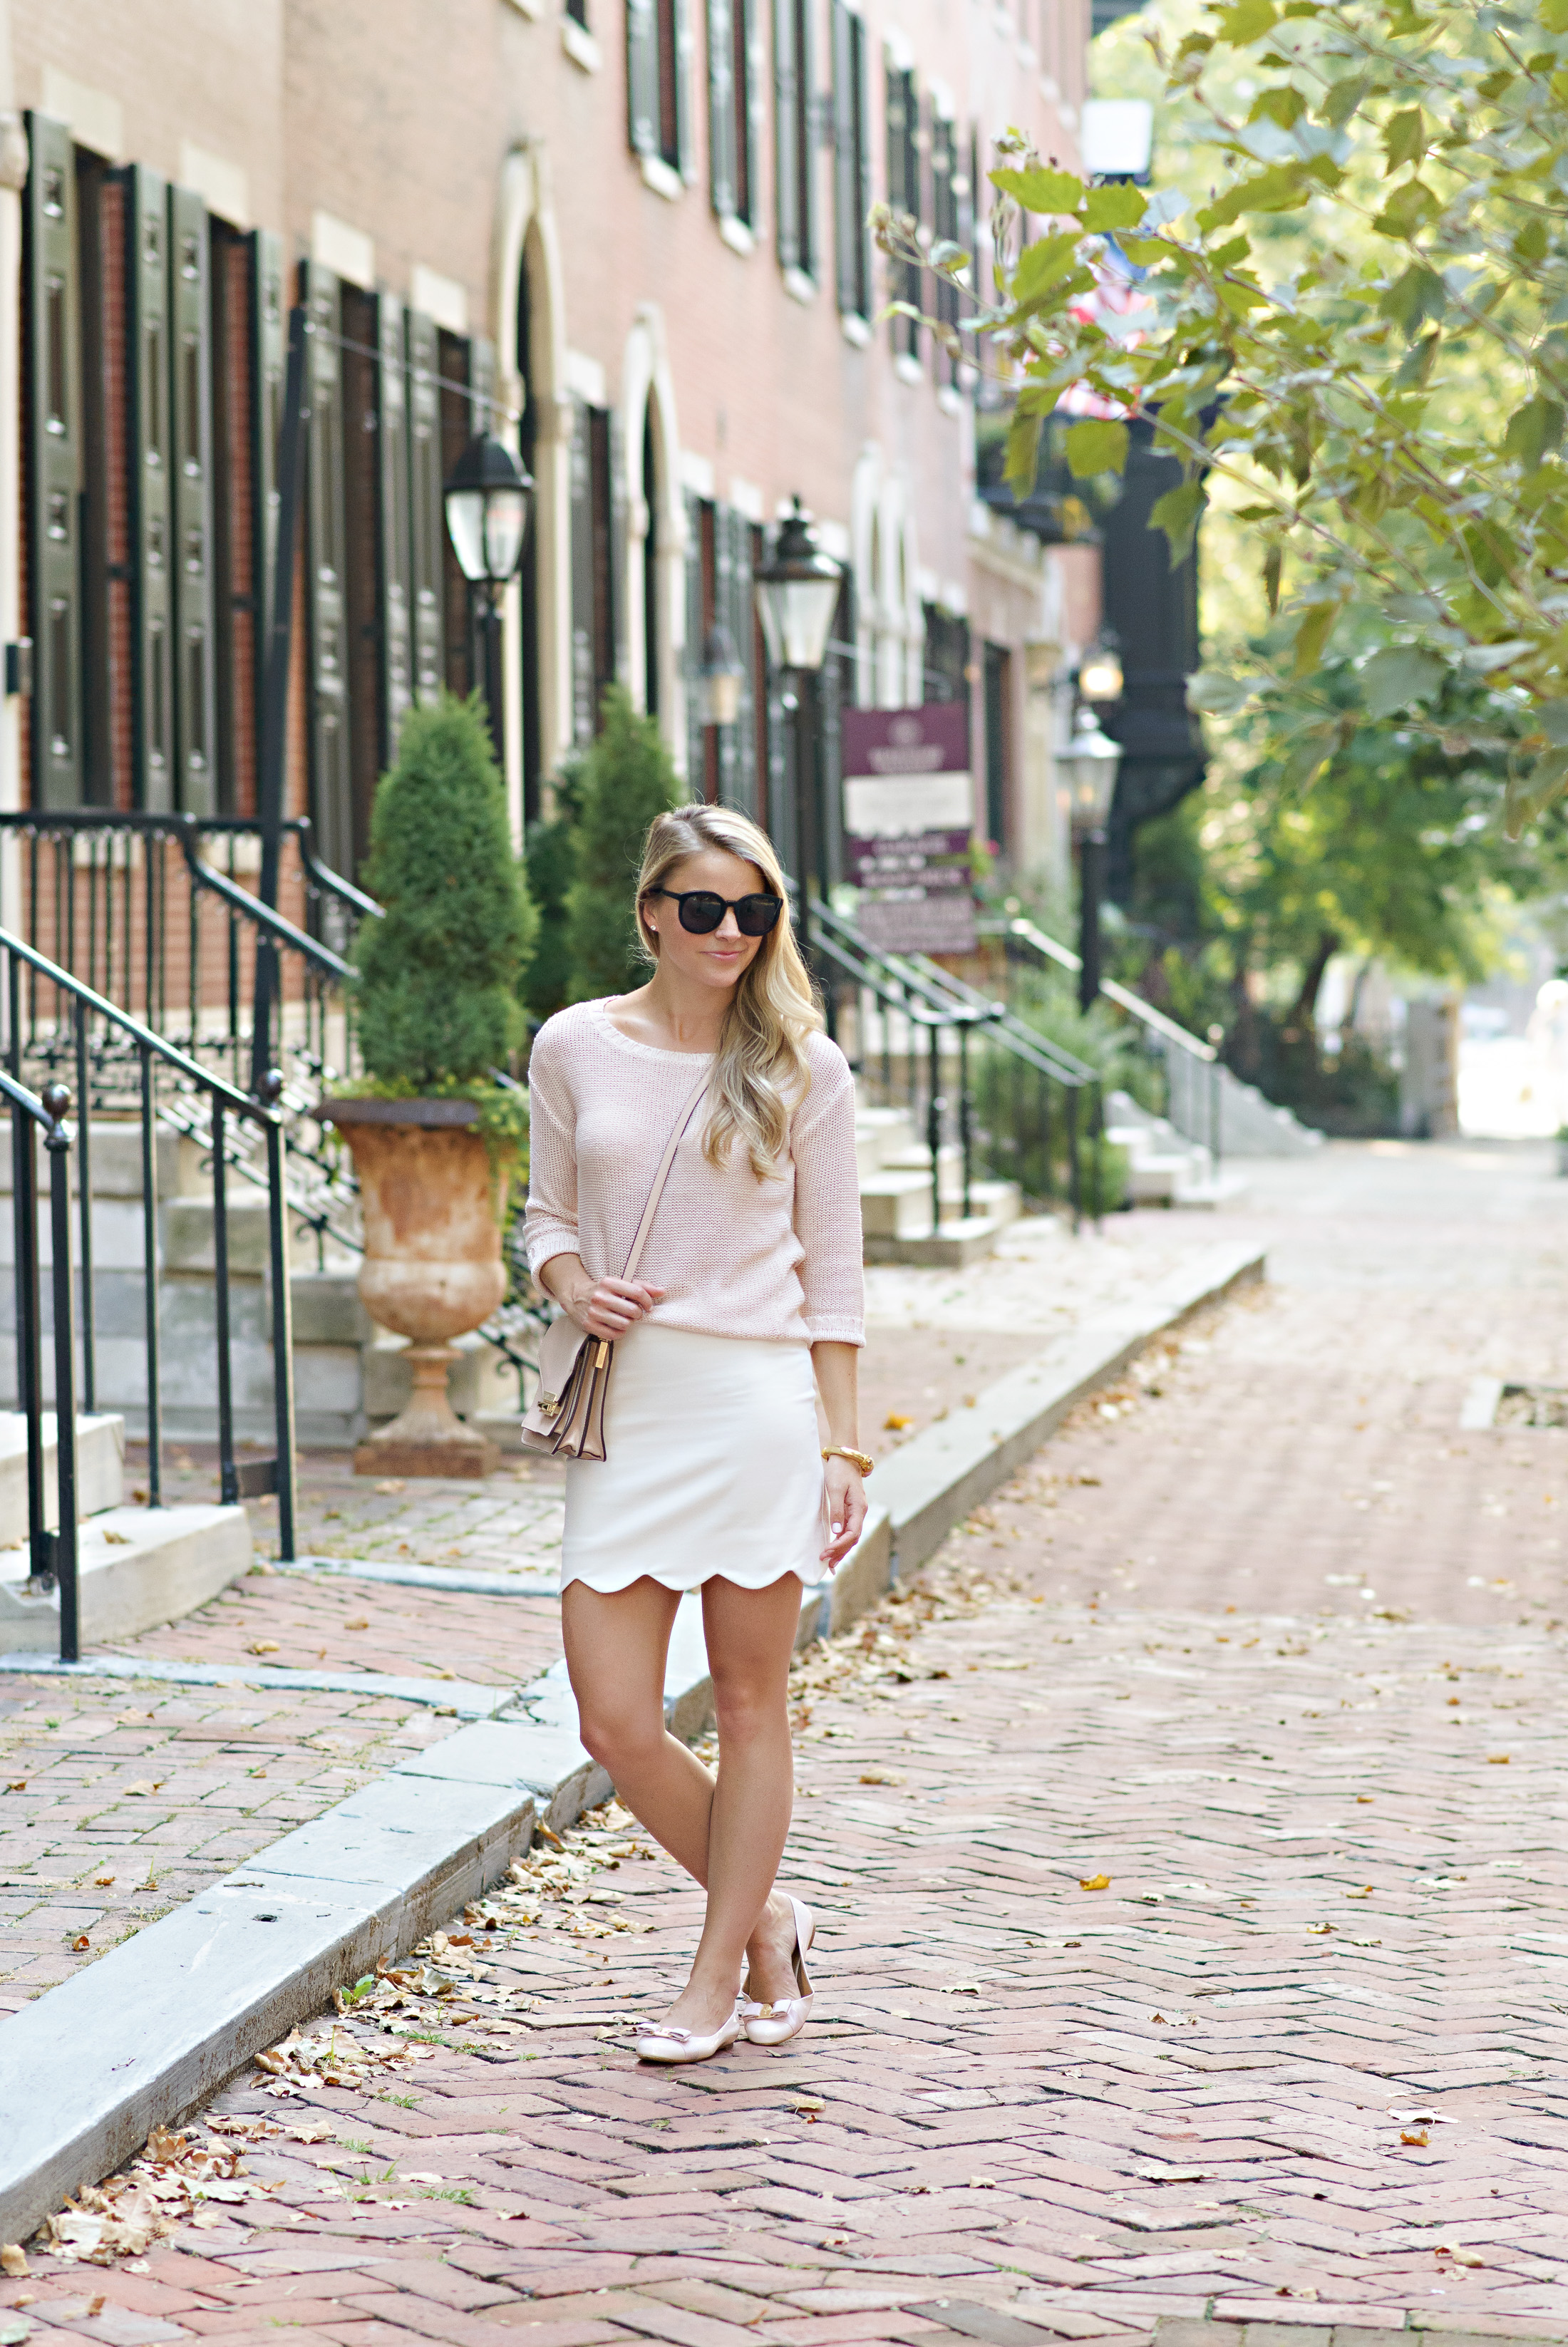 Street style tip of the day: Blush flats